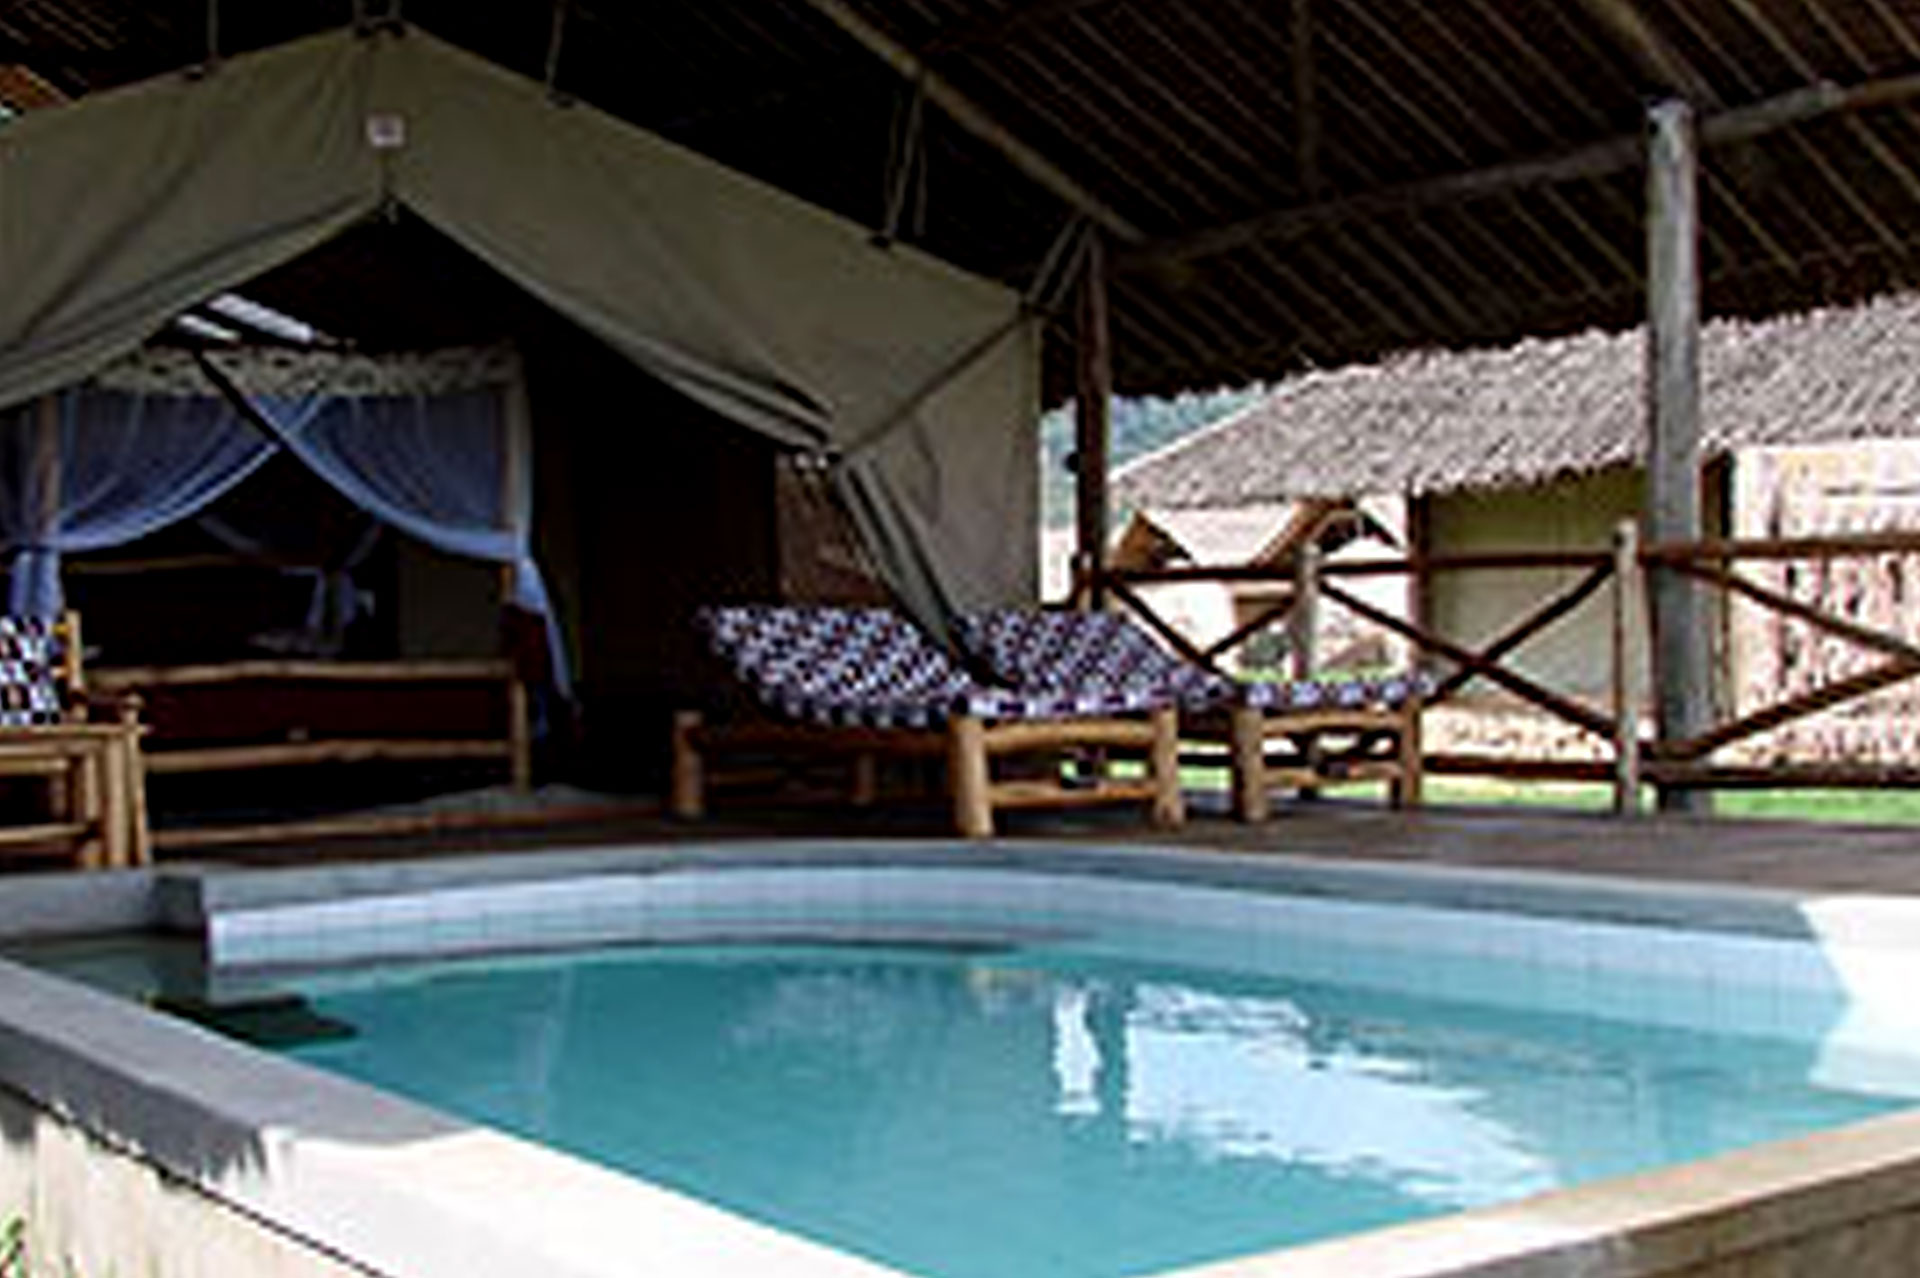 Diani_travel_center_tours_and_safaris_diani_tours_and_safaris_3_Days_Tsavo_east_and_ngutuni_